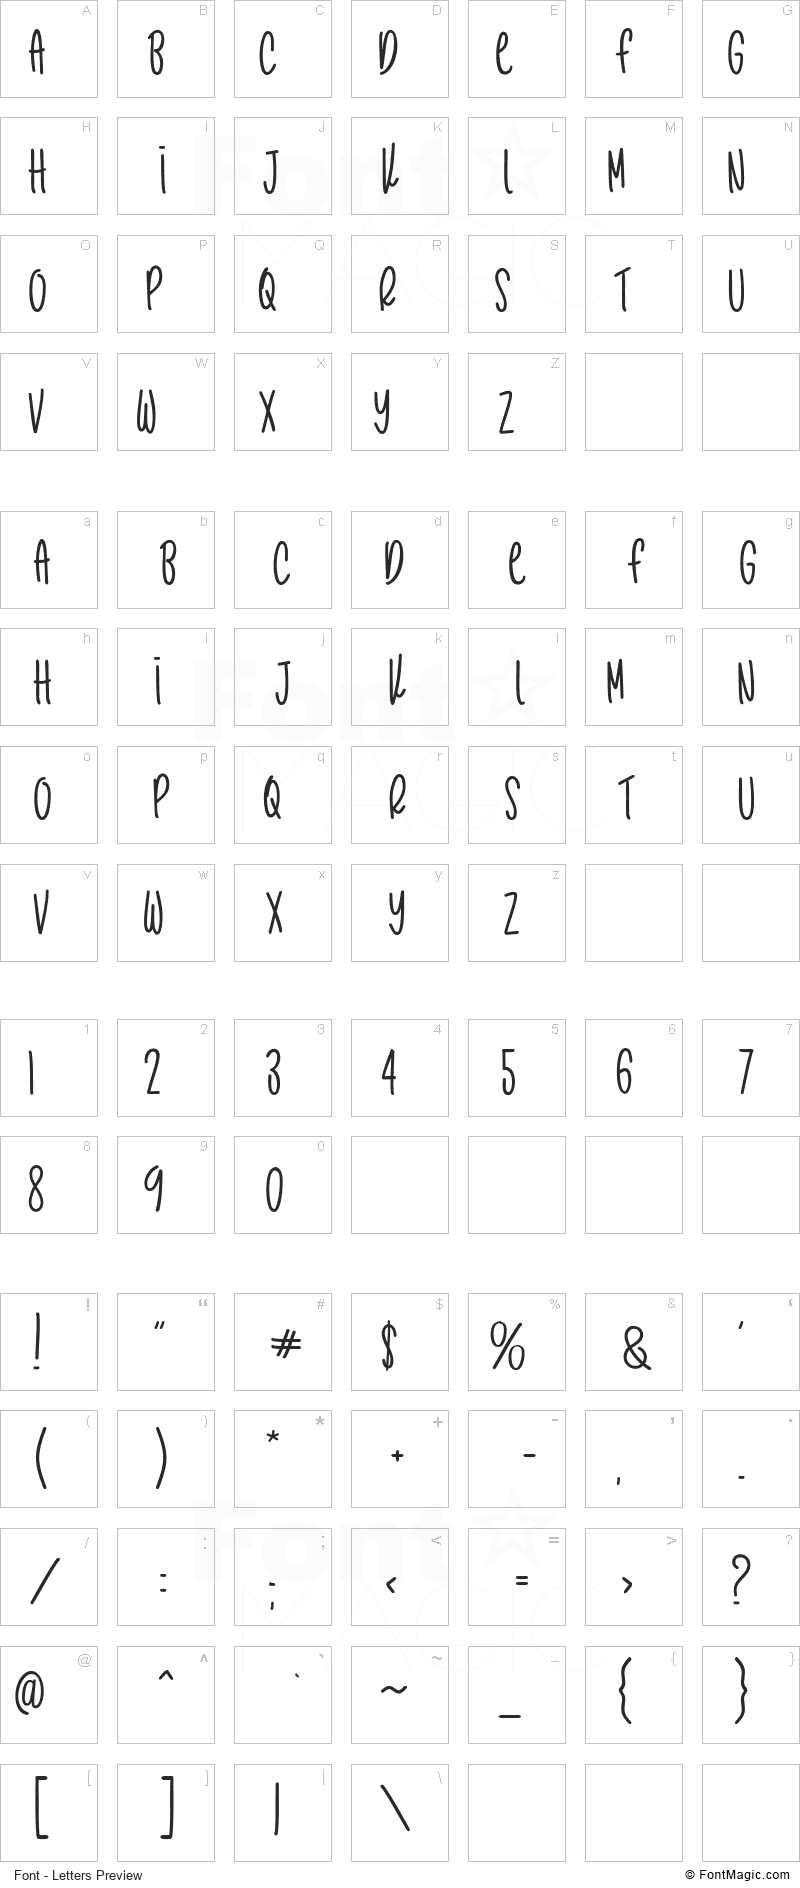 Cactus Story Font - All Latters Preview Chart